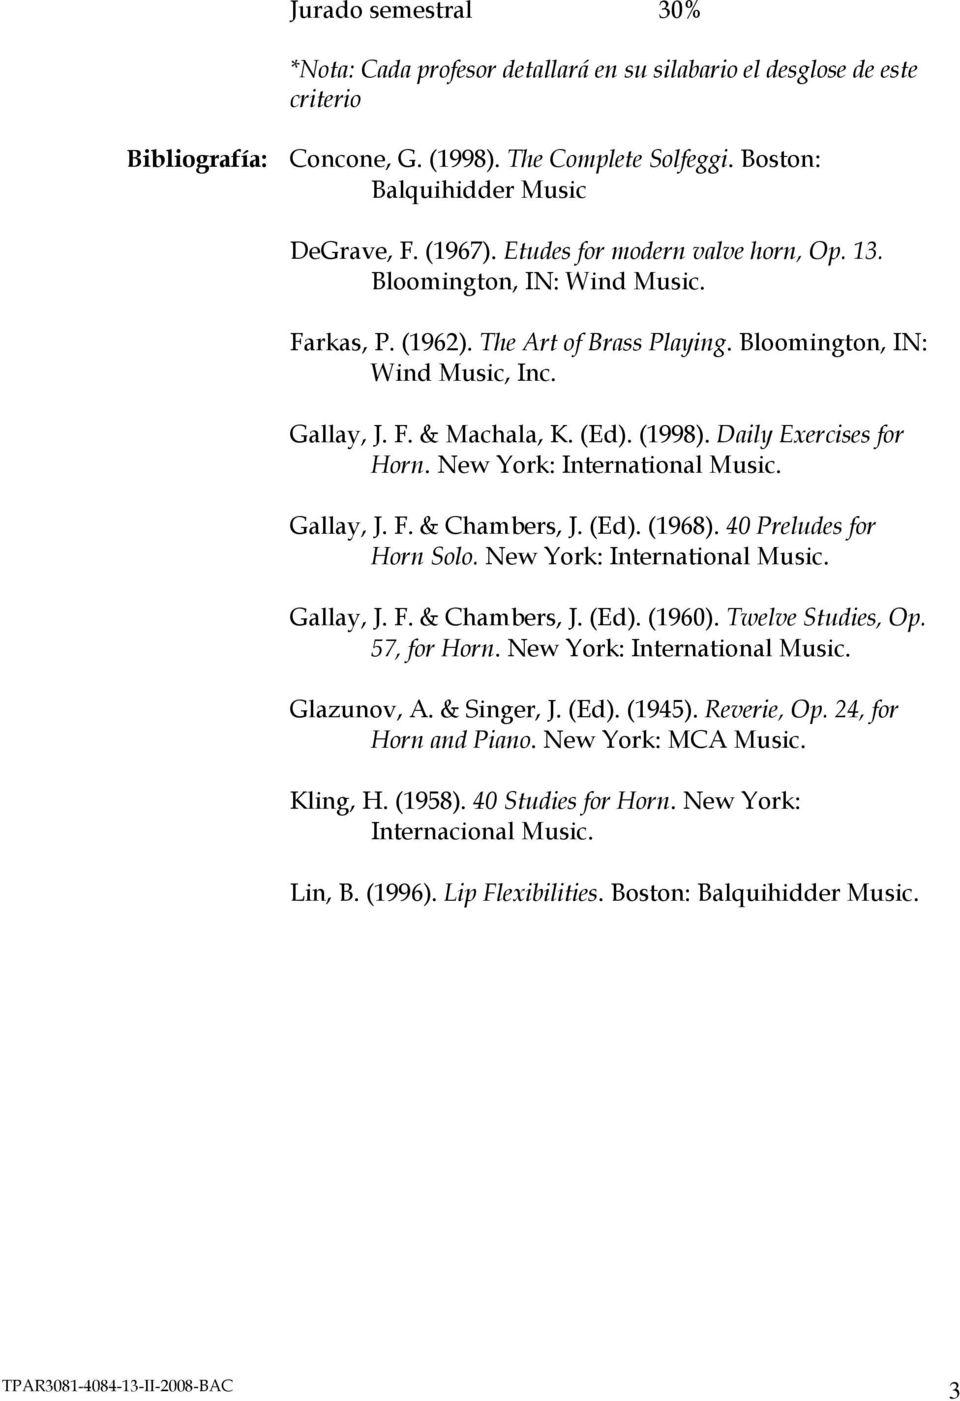 Daily Exercises for Horn. New York: International Music. Gallay, J. F. & Chambers, J. (Ed). (1968). 40 Preludes for Horn Solo. New York: International Music. Gallay, J. F. & Chambers, J. (Ed). (1960).